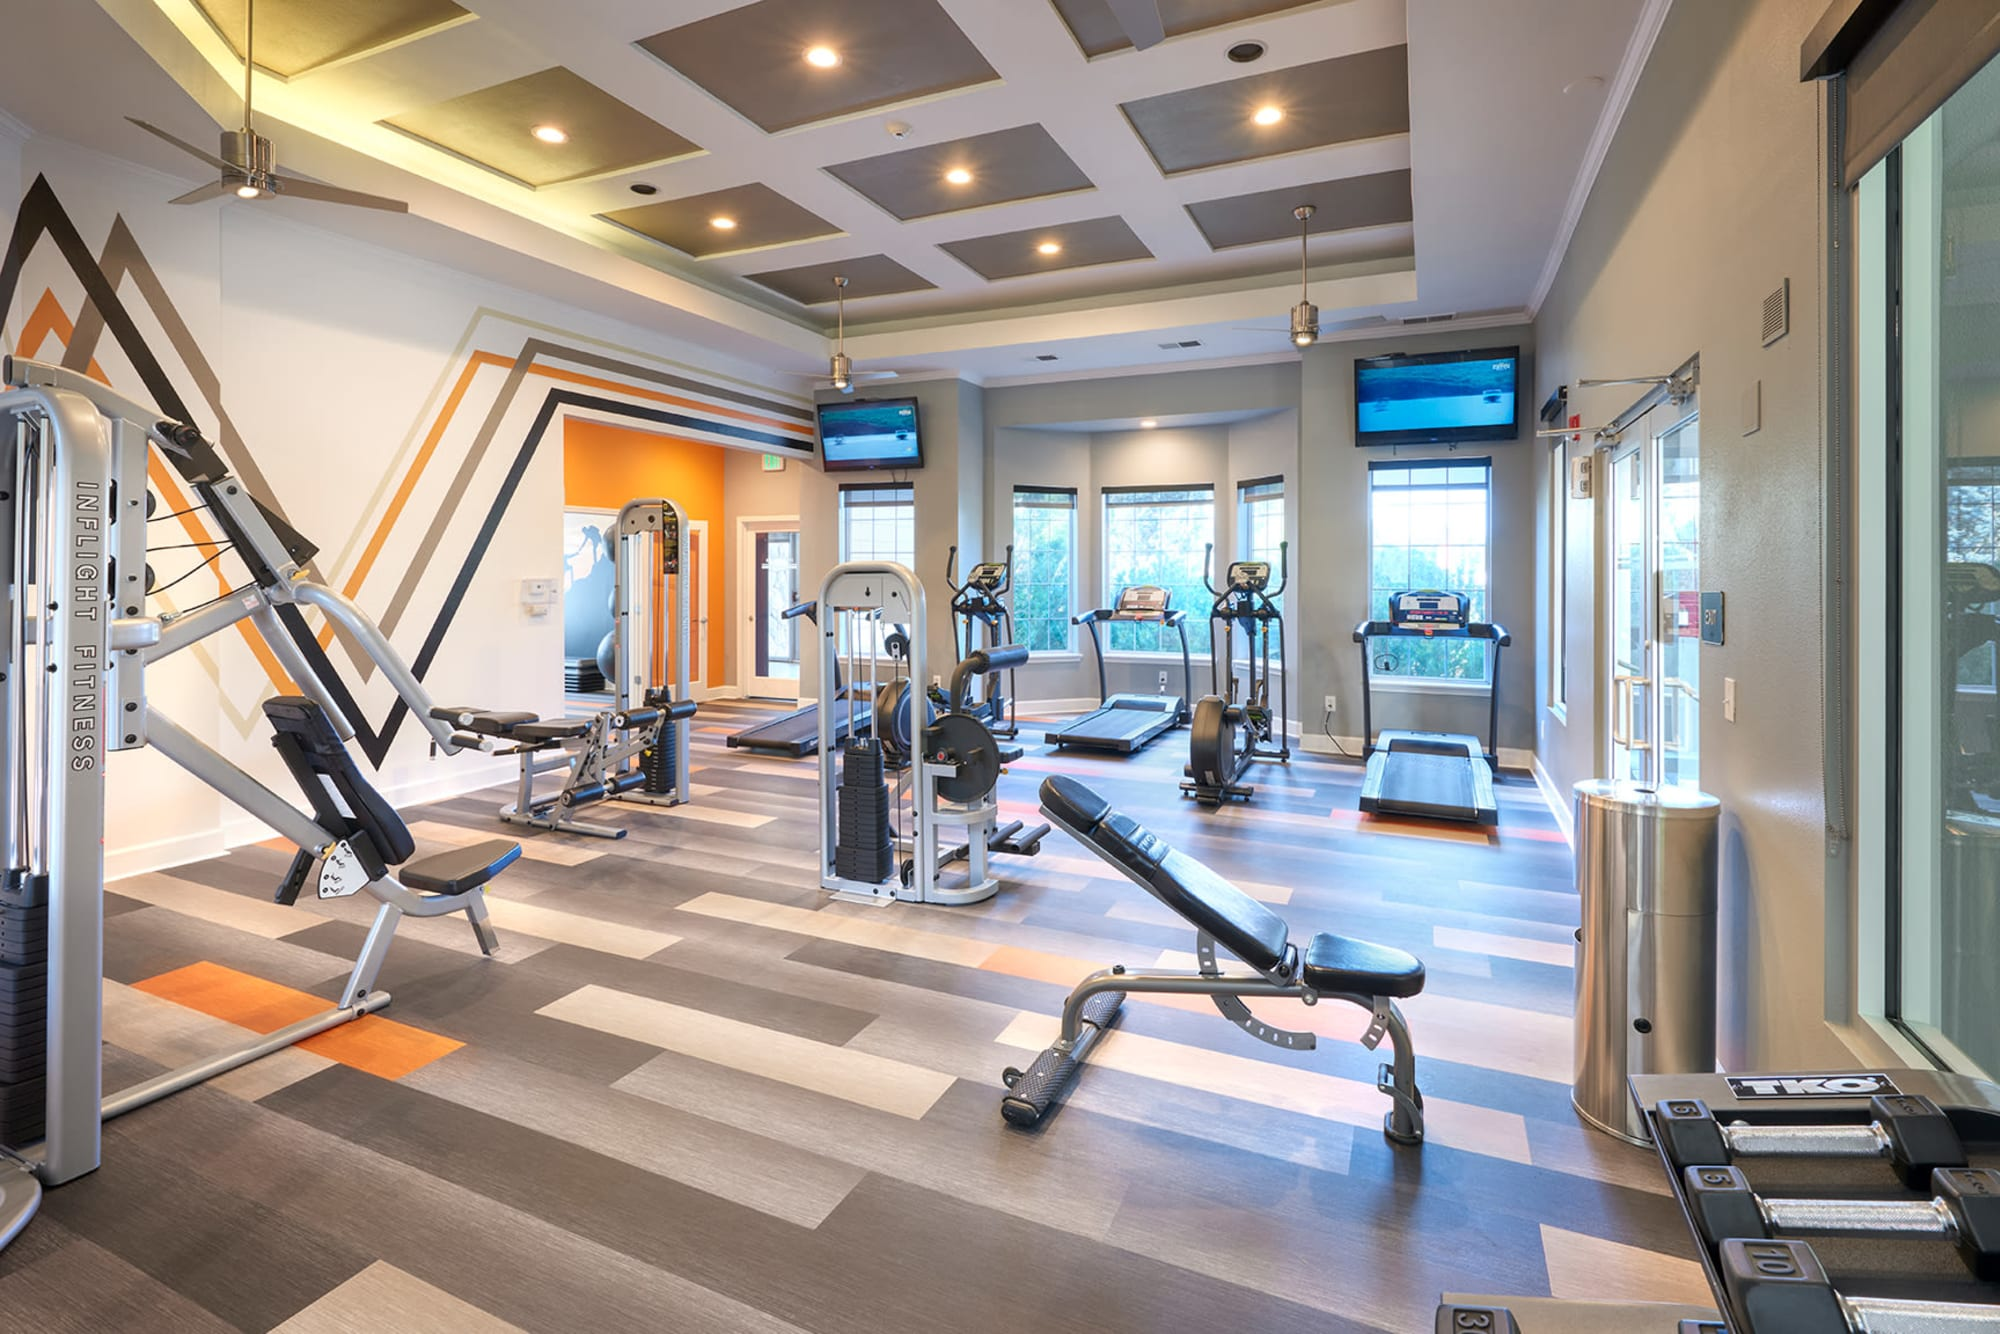 Fitness center with individual workout stations at Legend Oaks Apartments in Aurora, Colorado